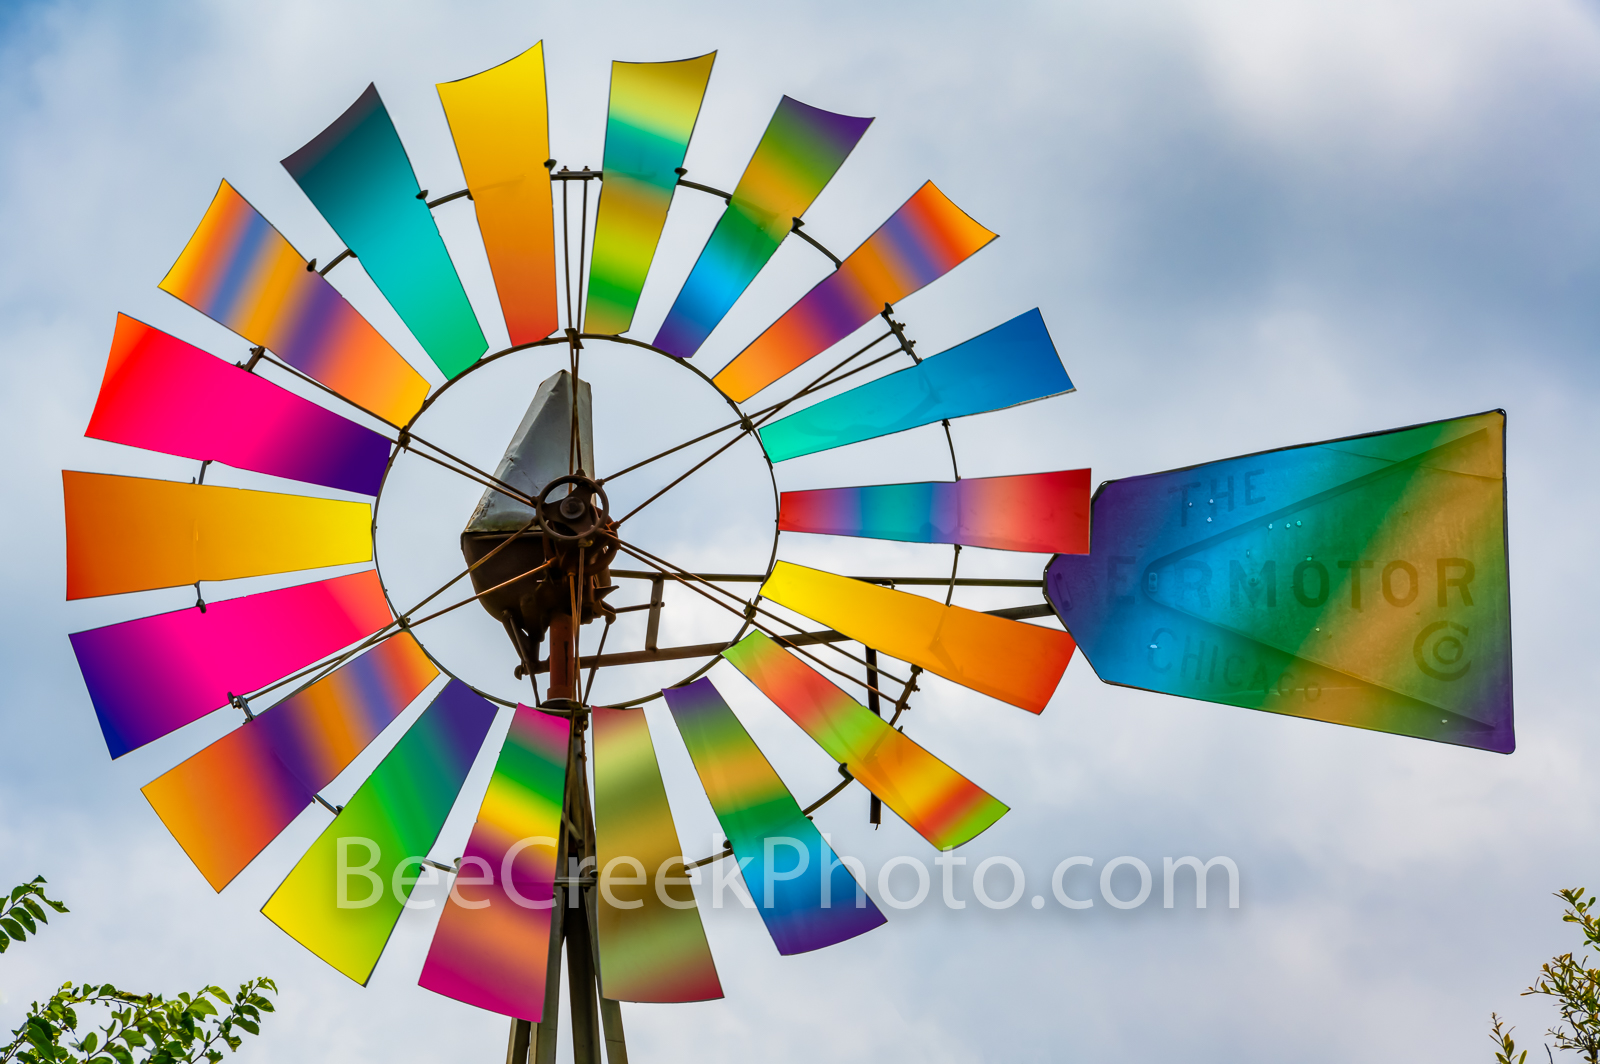 Fantasy Rainbow Windmill - Ok I love windmills so I am always wanting to stop and capture a few images they take me to my happy...